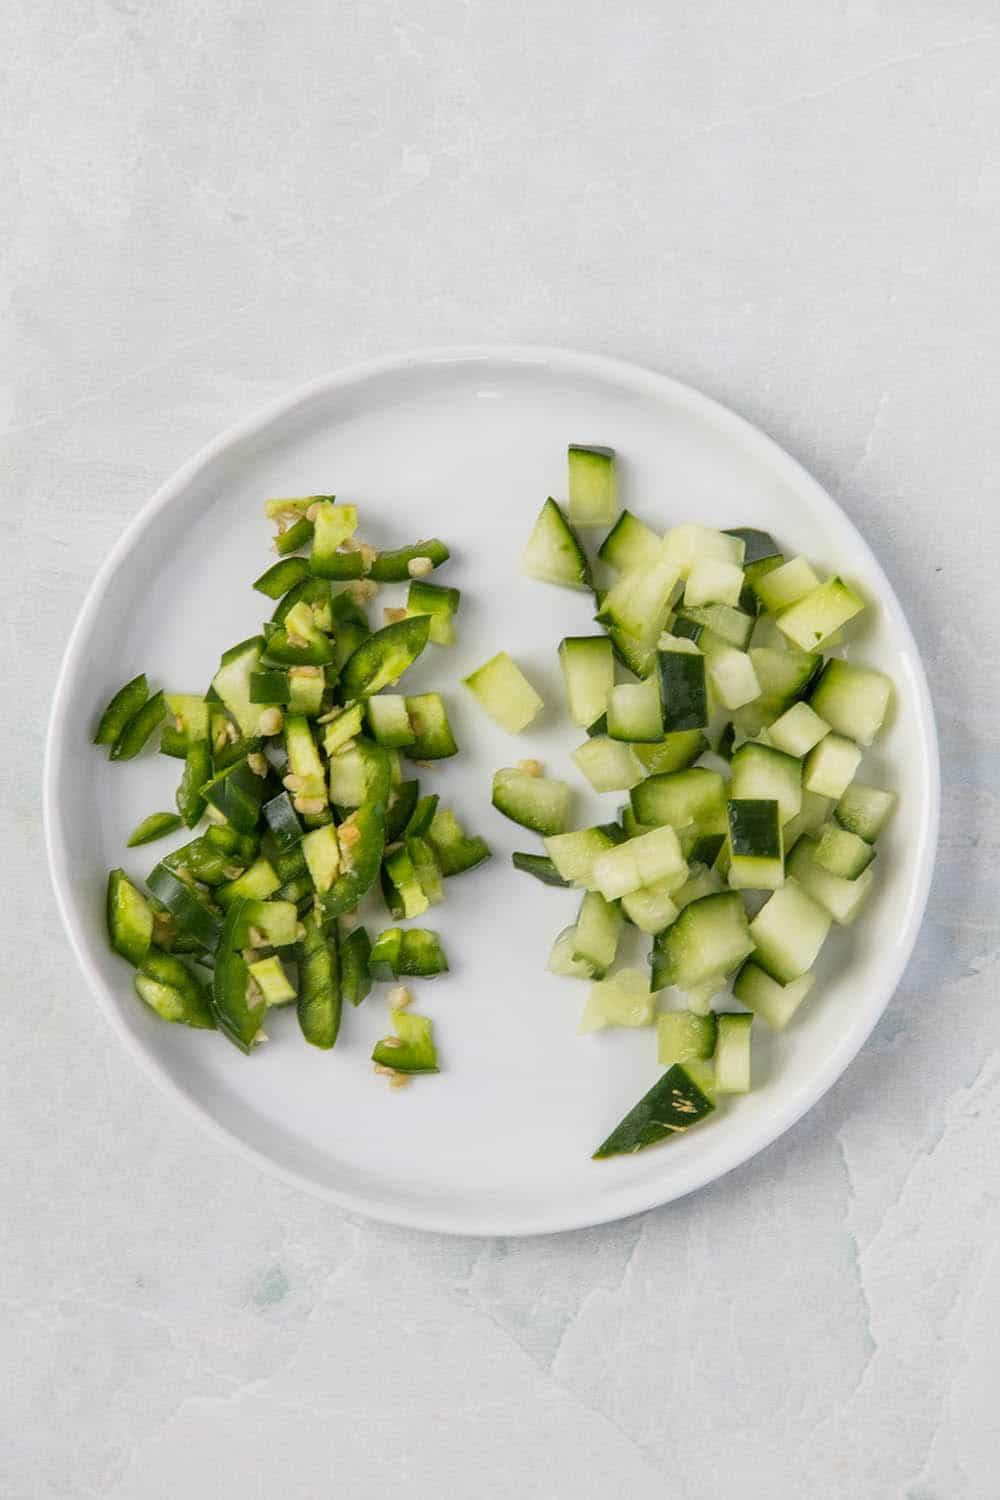 Diced cucumbers and serrano peppers